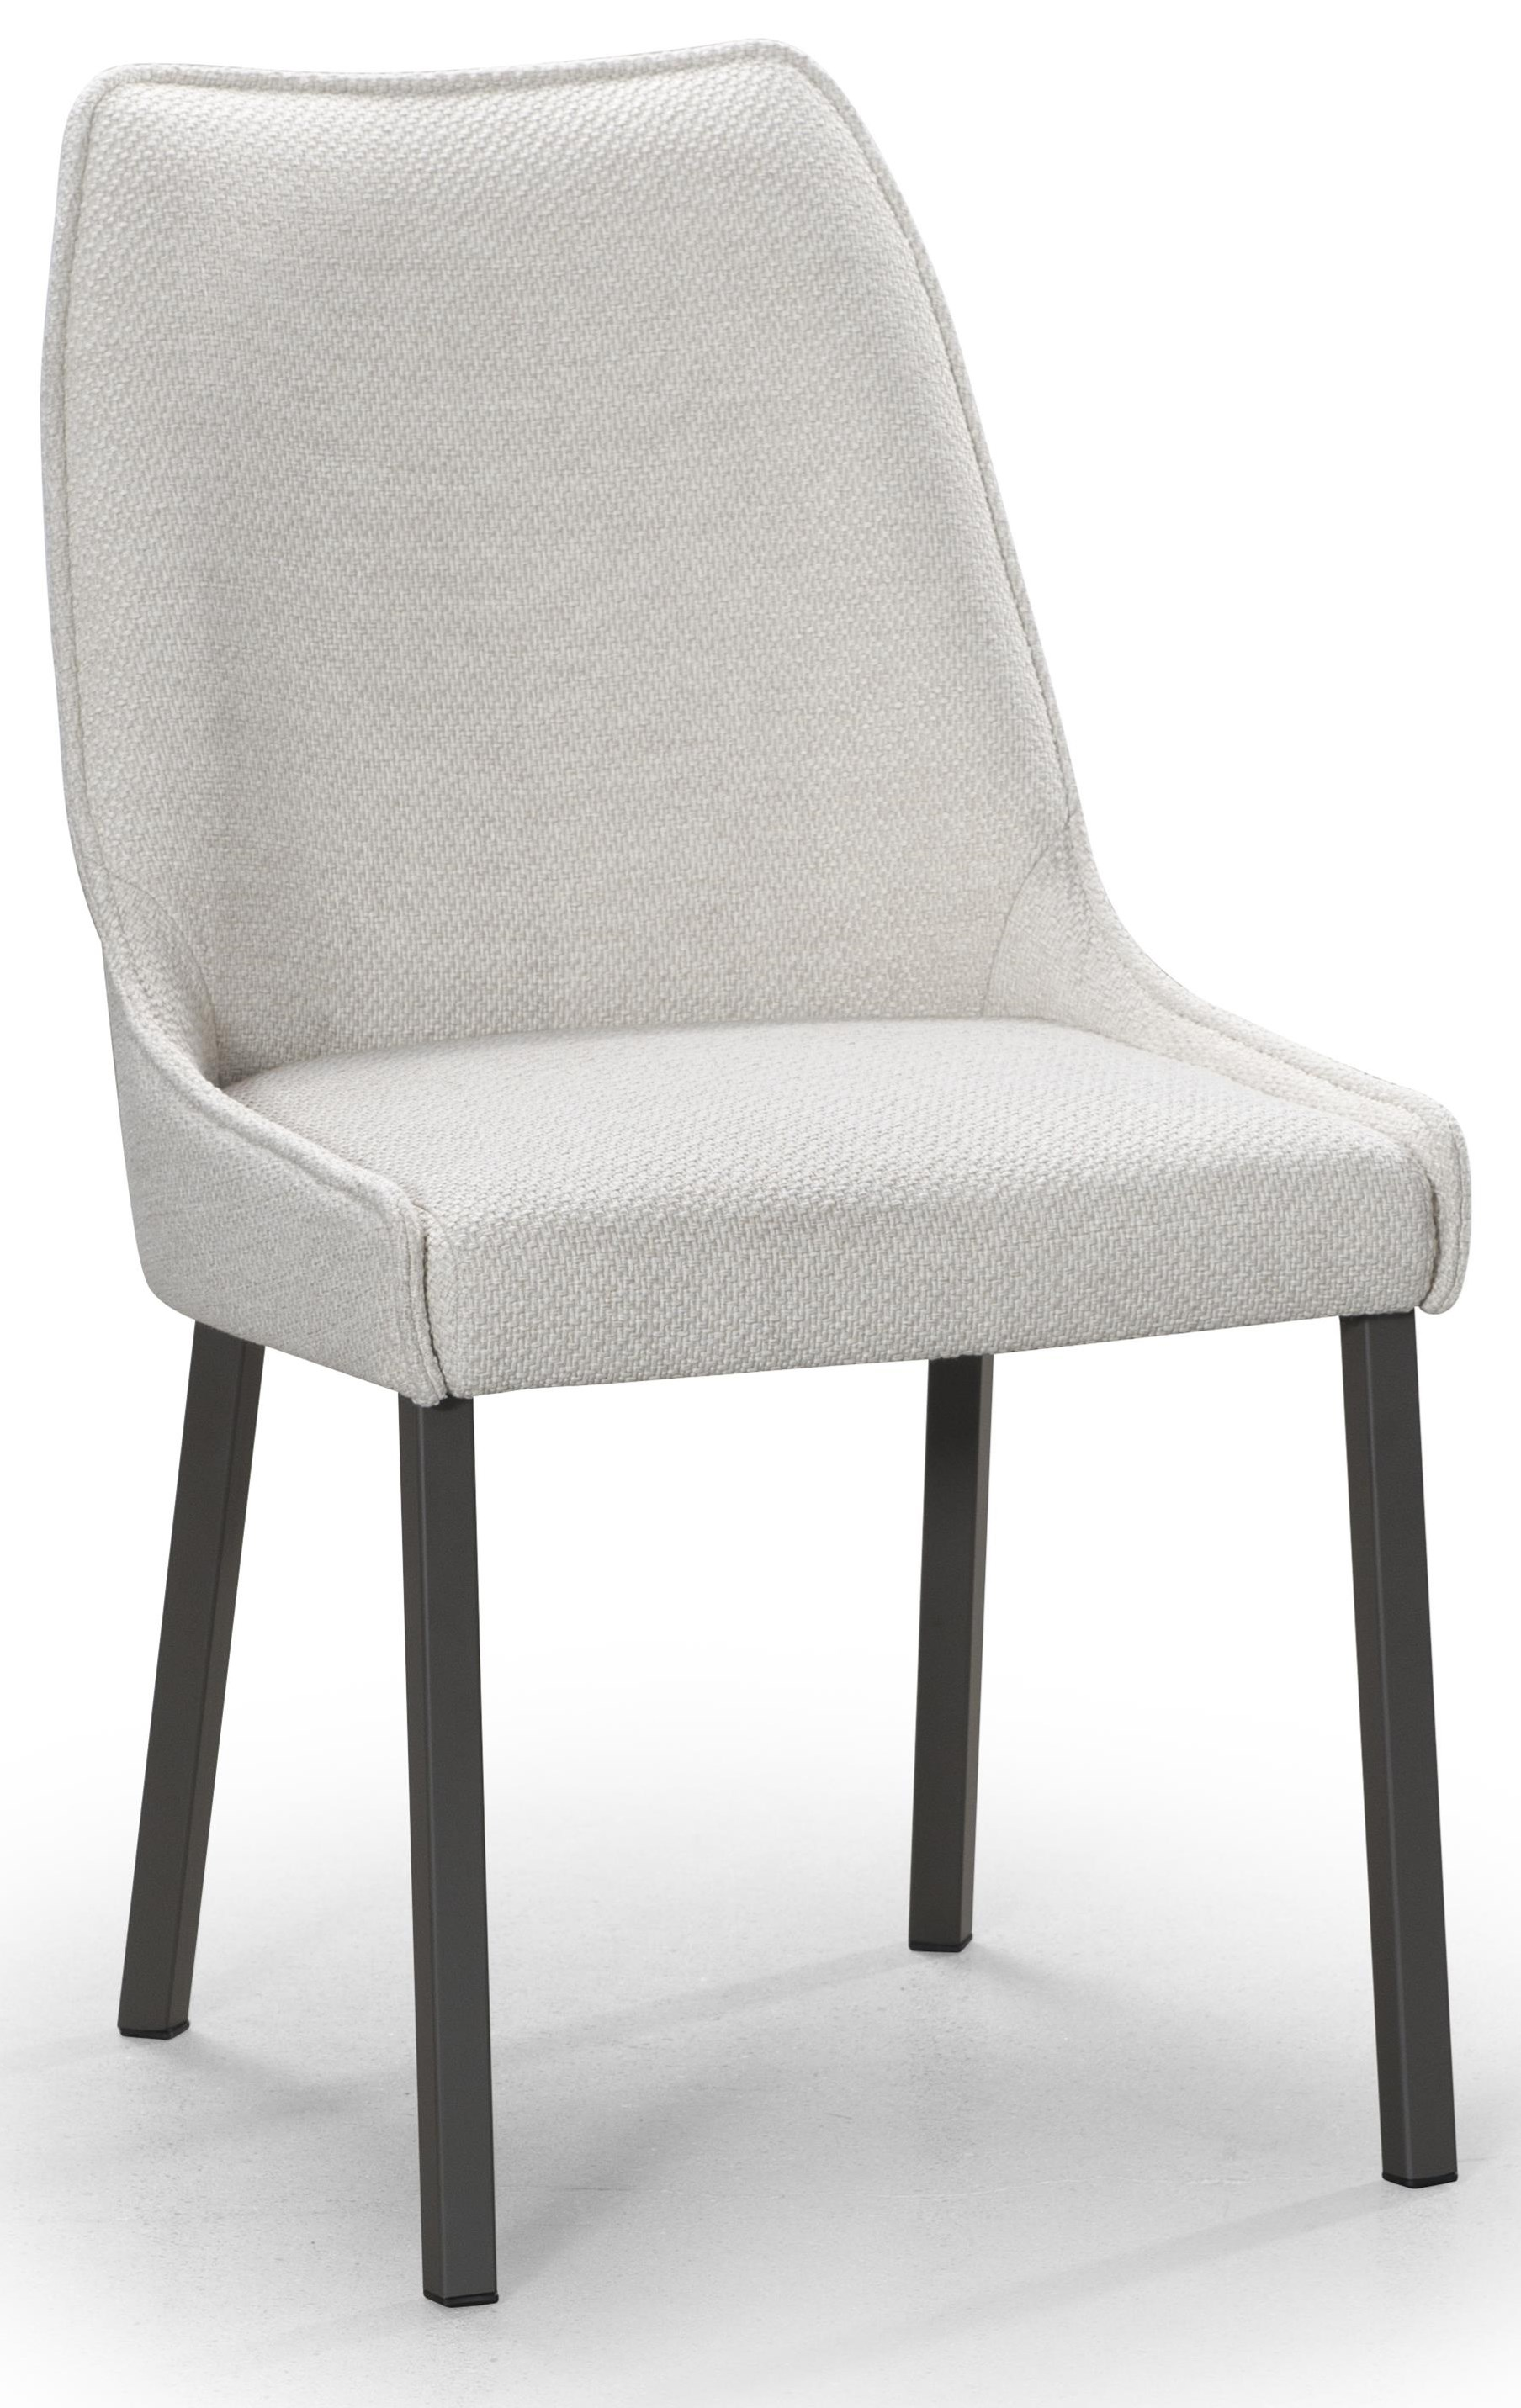 Olivia Olivia Chair by Trica at Stoney Creek Furniture